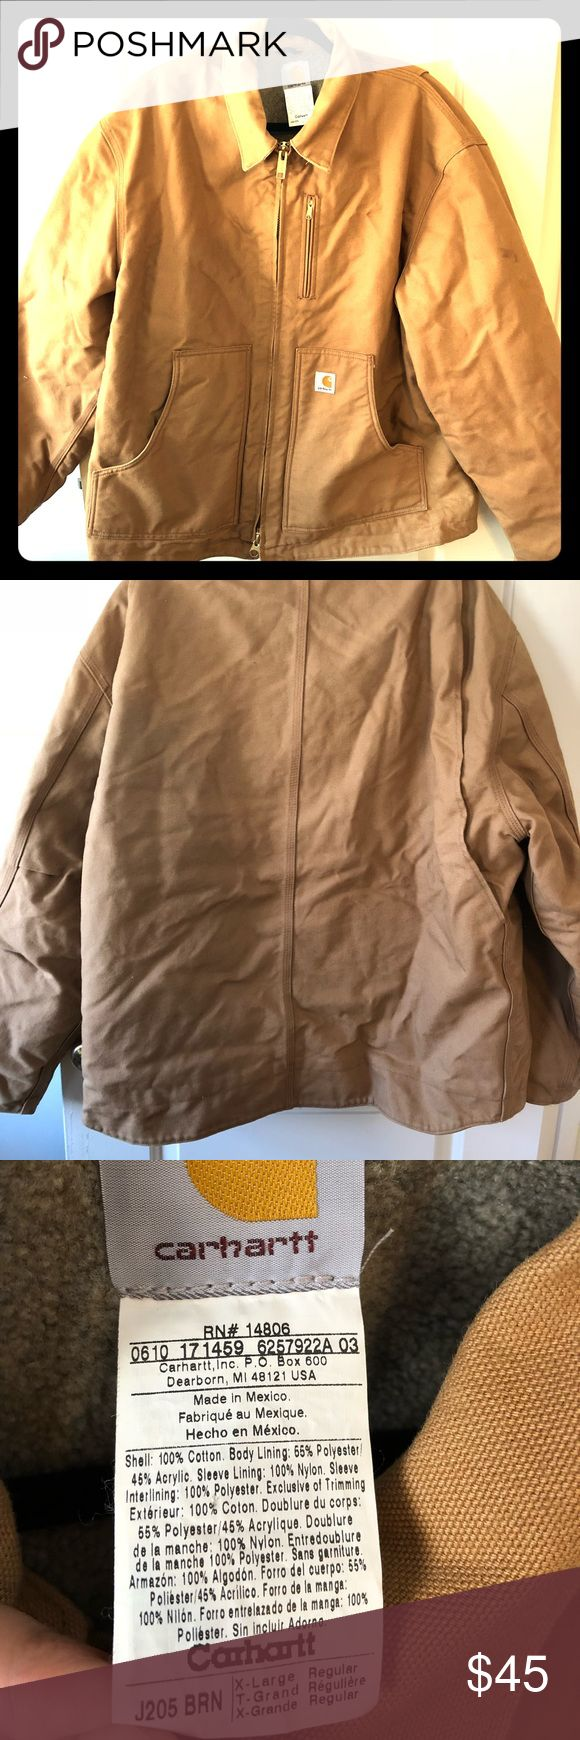 Carhartt jacket Men's XL winter jacket. Lightly worn, left upper sleeve has small stain, no ther damage. 2 inside pockets. Extra long back. Double zipper. Appears wrinkled from being in cramped closet. Carhartt Jackets & Coats